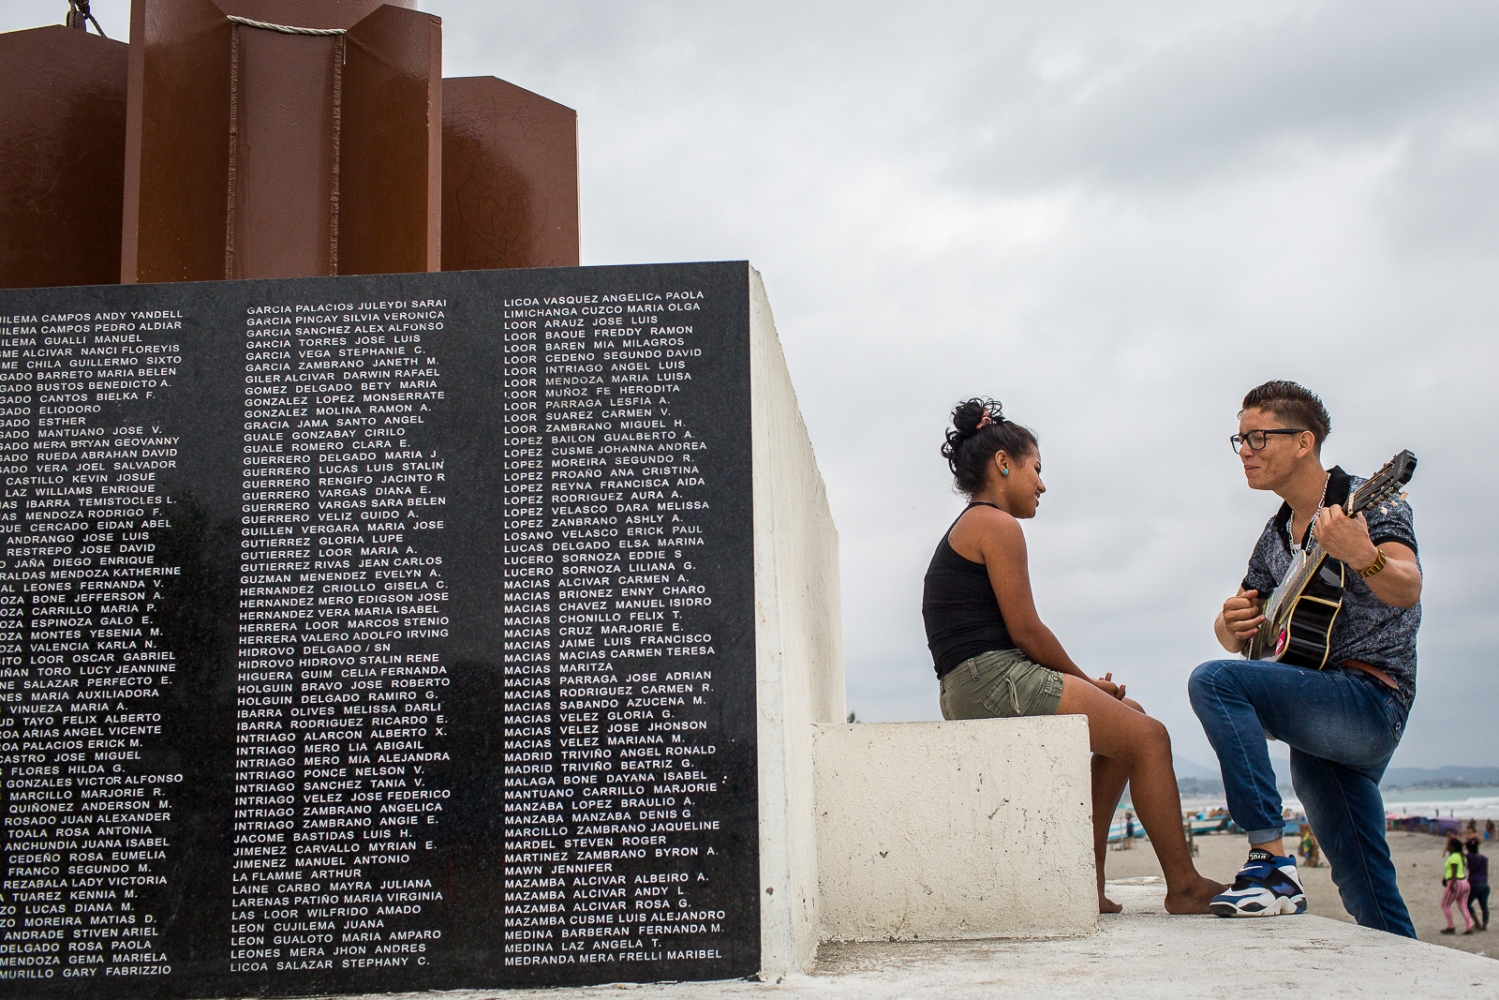 A boy plays a serenade to a girl on the memorial to the victims of the 16th April earthquake in Pedernales. Pedernales was the epicentre of the earthquake, which destroyed much of the city and killed 188 people.